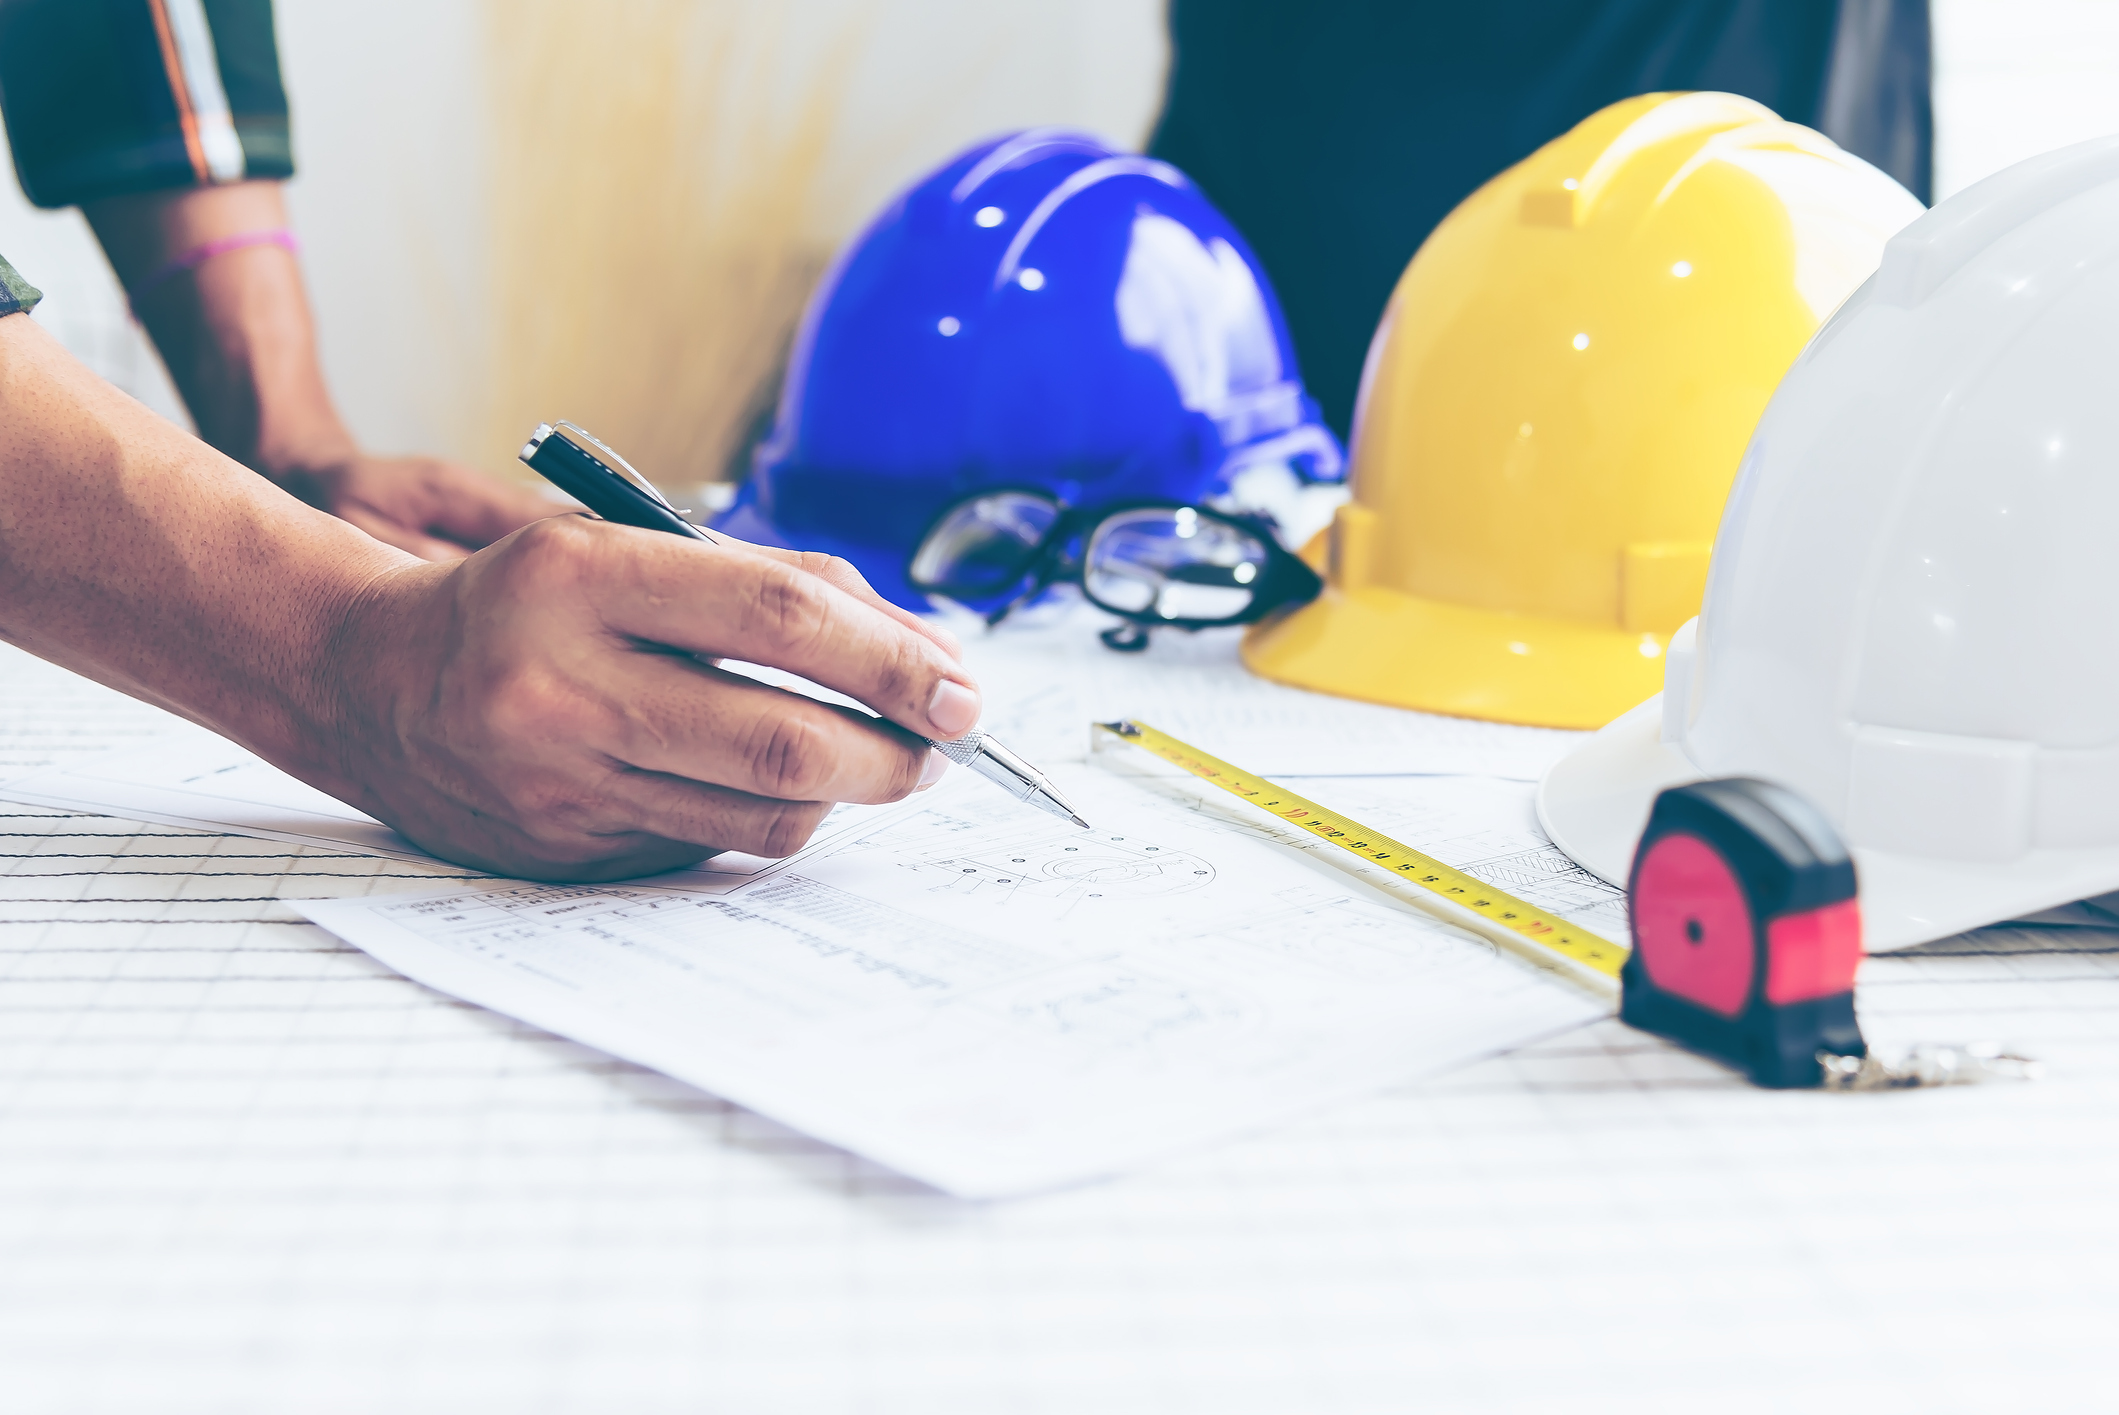 our services - We provide a variety of engineering services for residential and commercial construction projects.